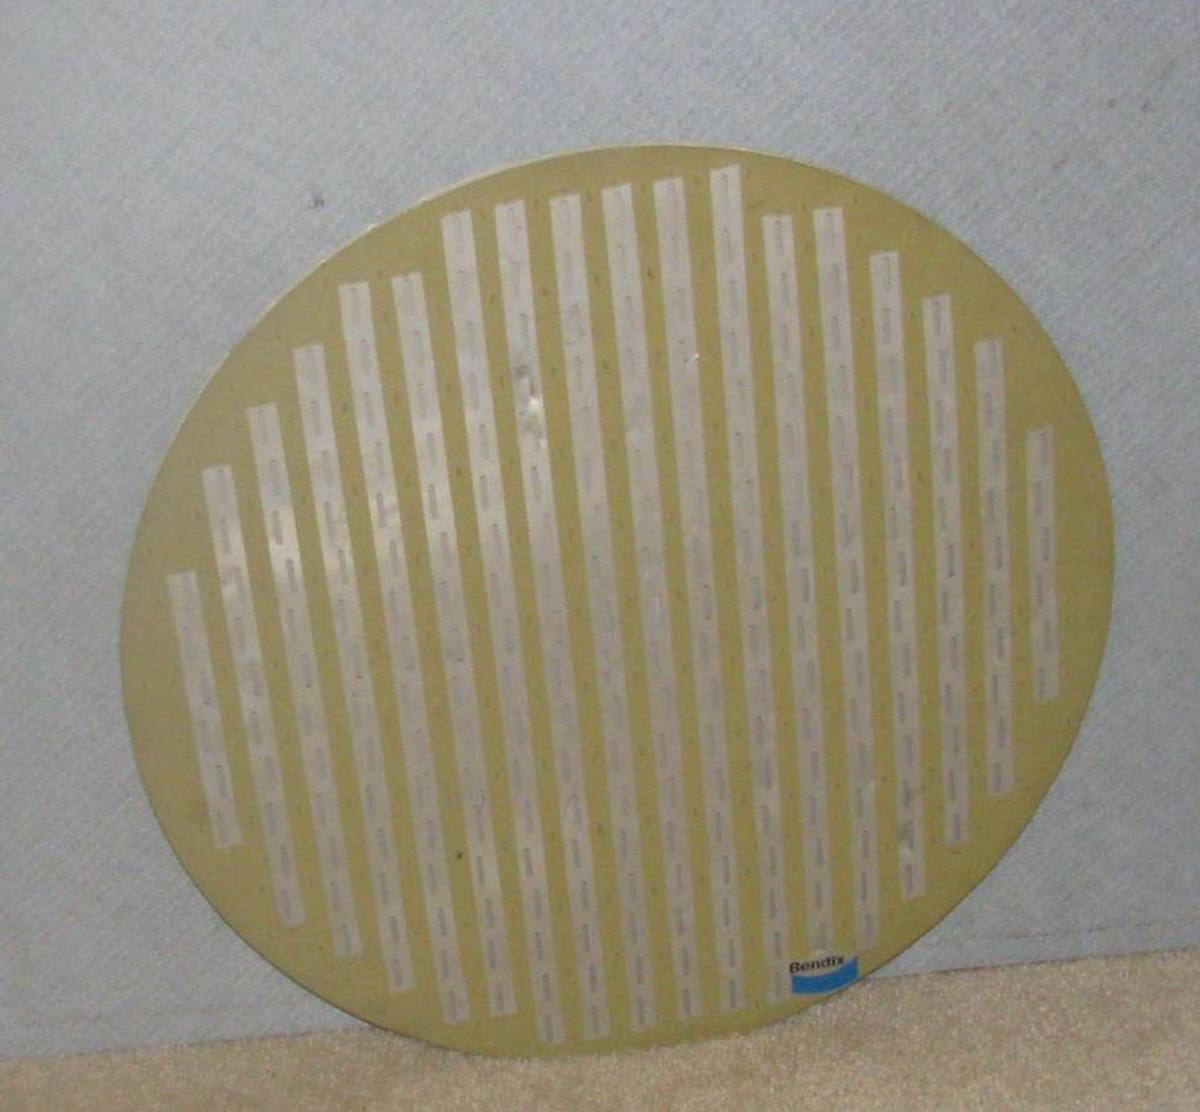 Slot antenna from an aircraft nose cone.